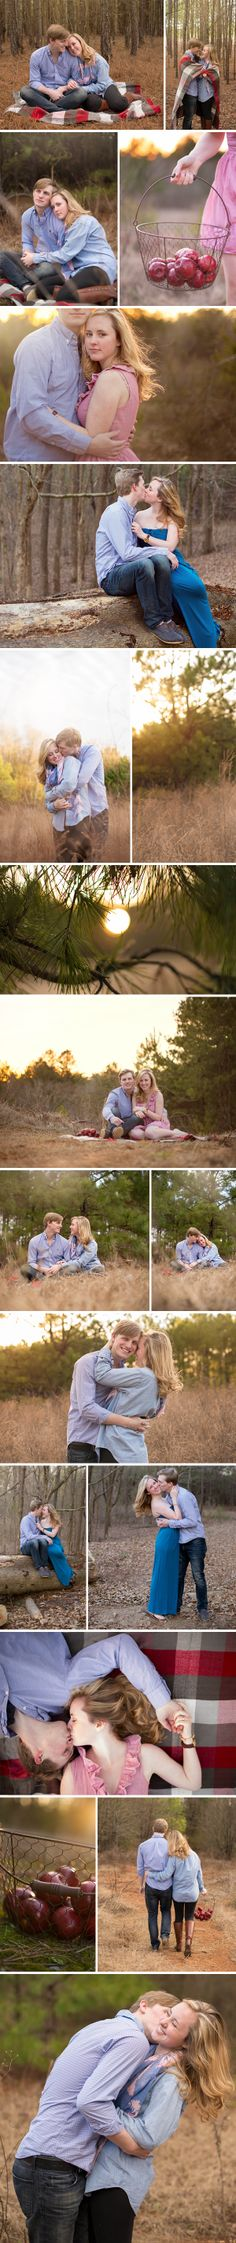 Couples session| Randi Vasquez Photography